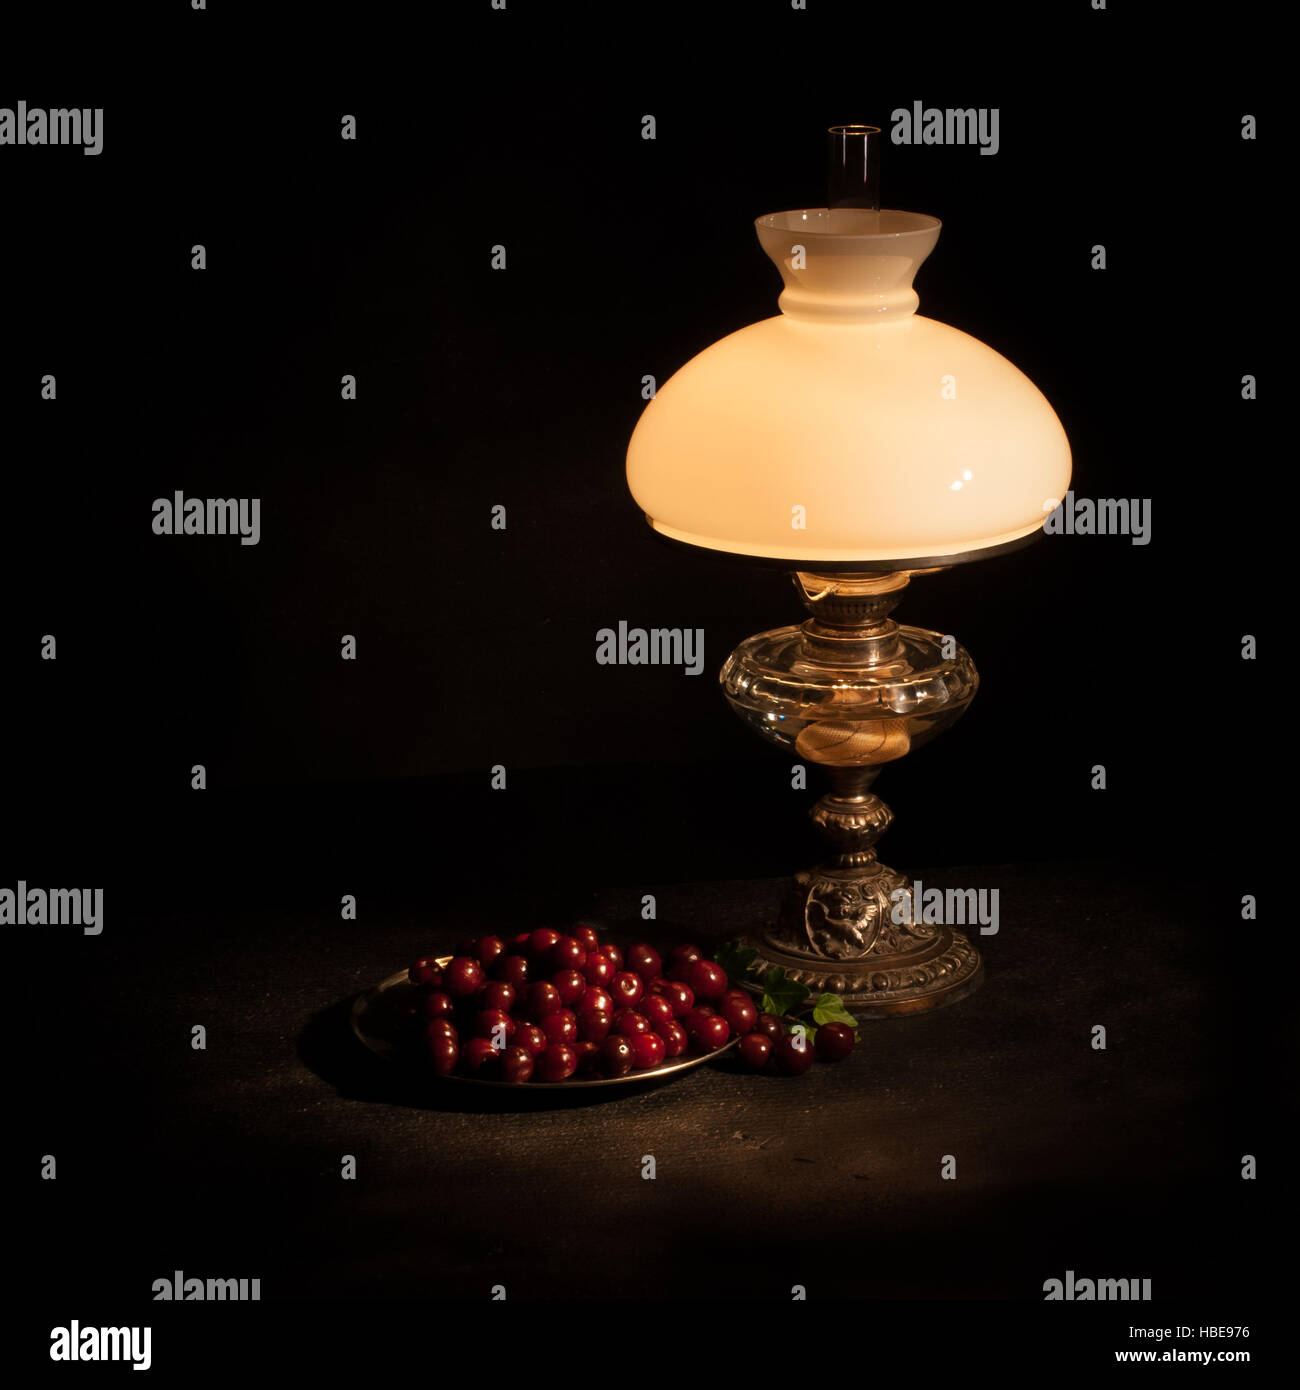 The Kerosene lamp and a plate cherries as a still life with a black background - Stock Image